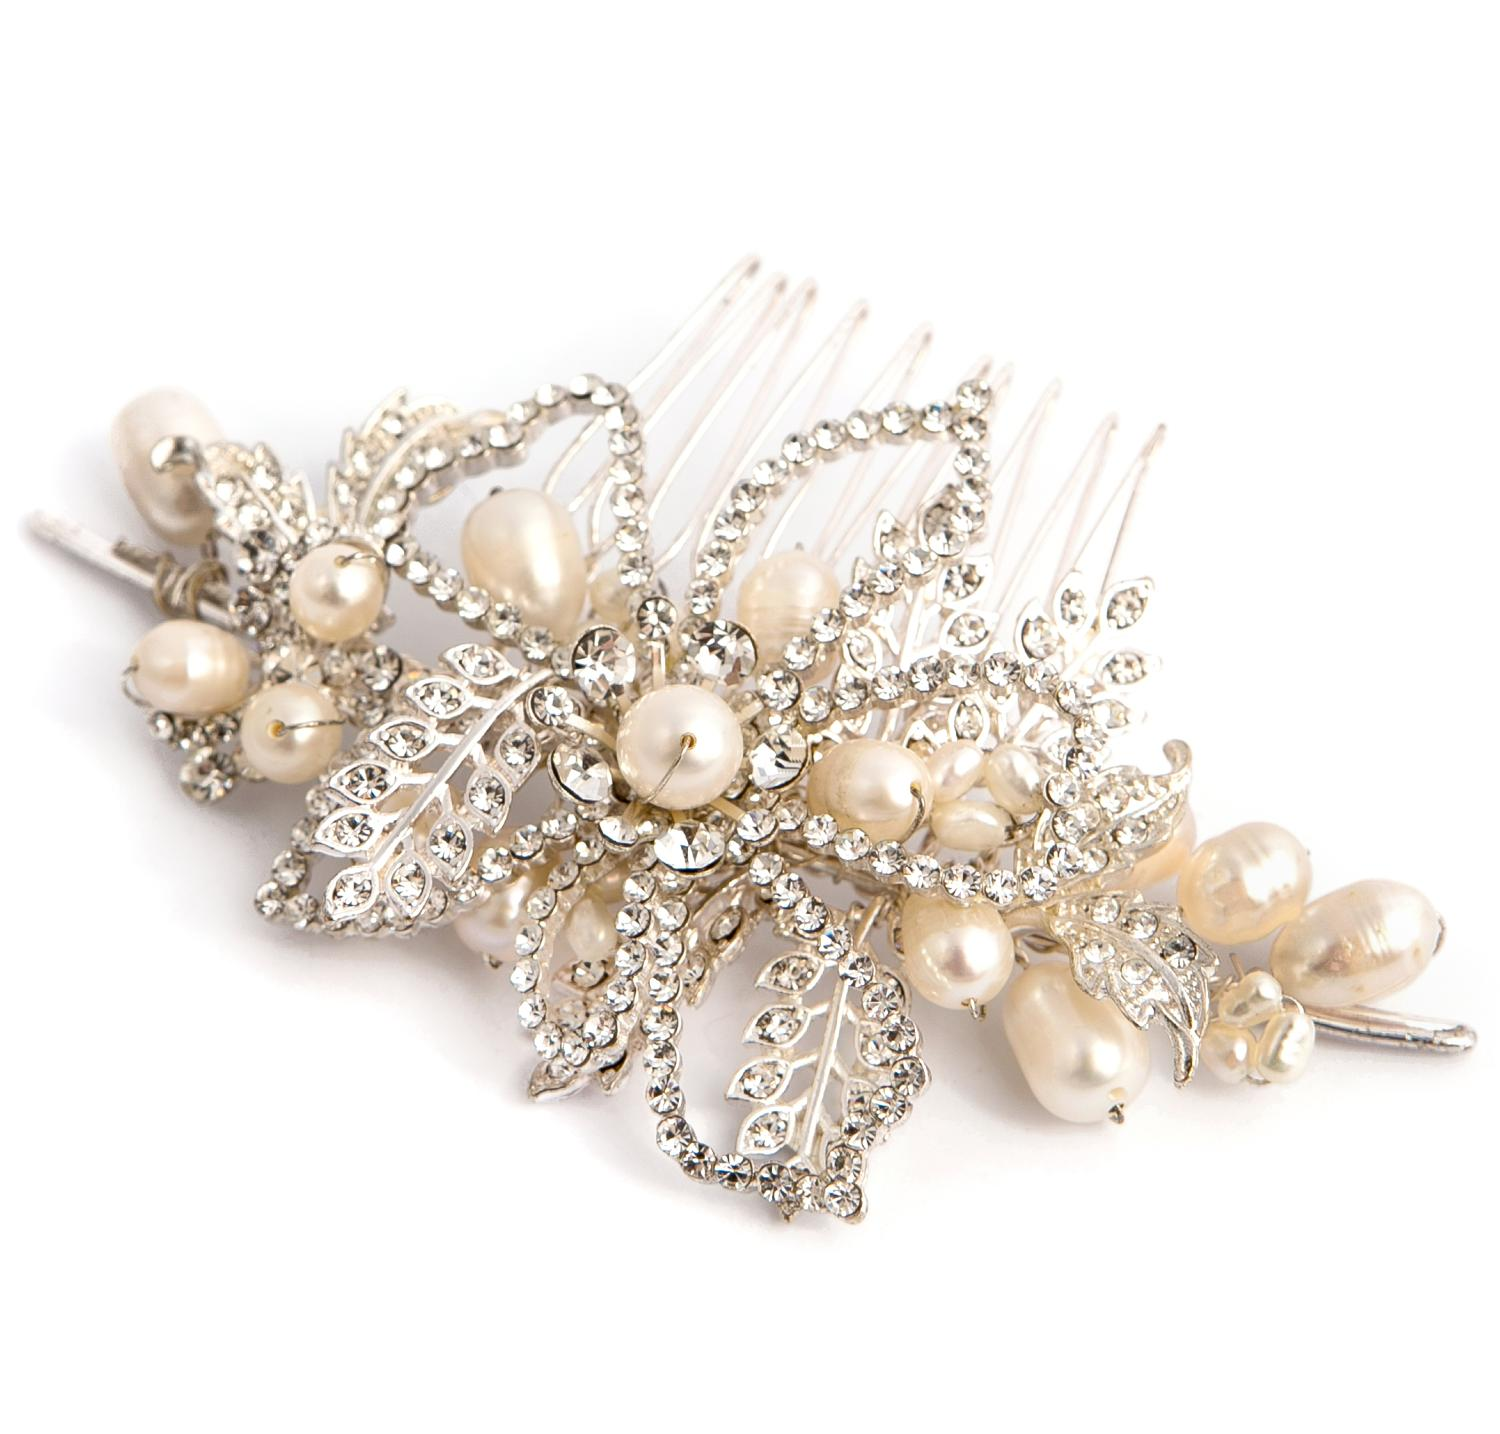 Silver Plated and Freshwater Pearl Hair Comb